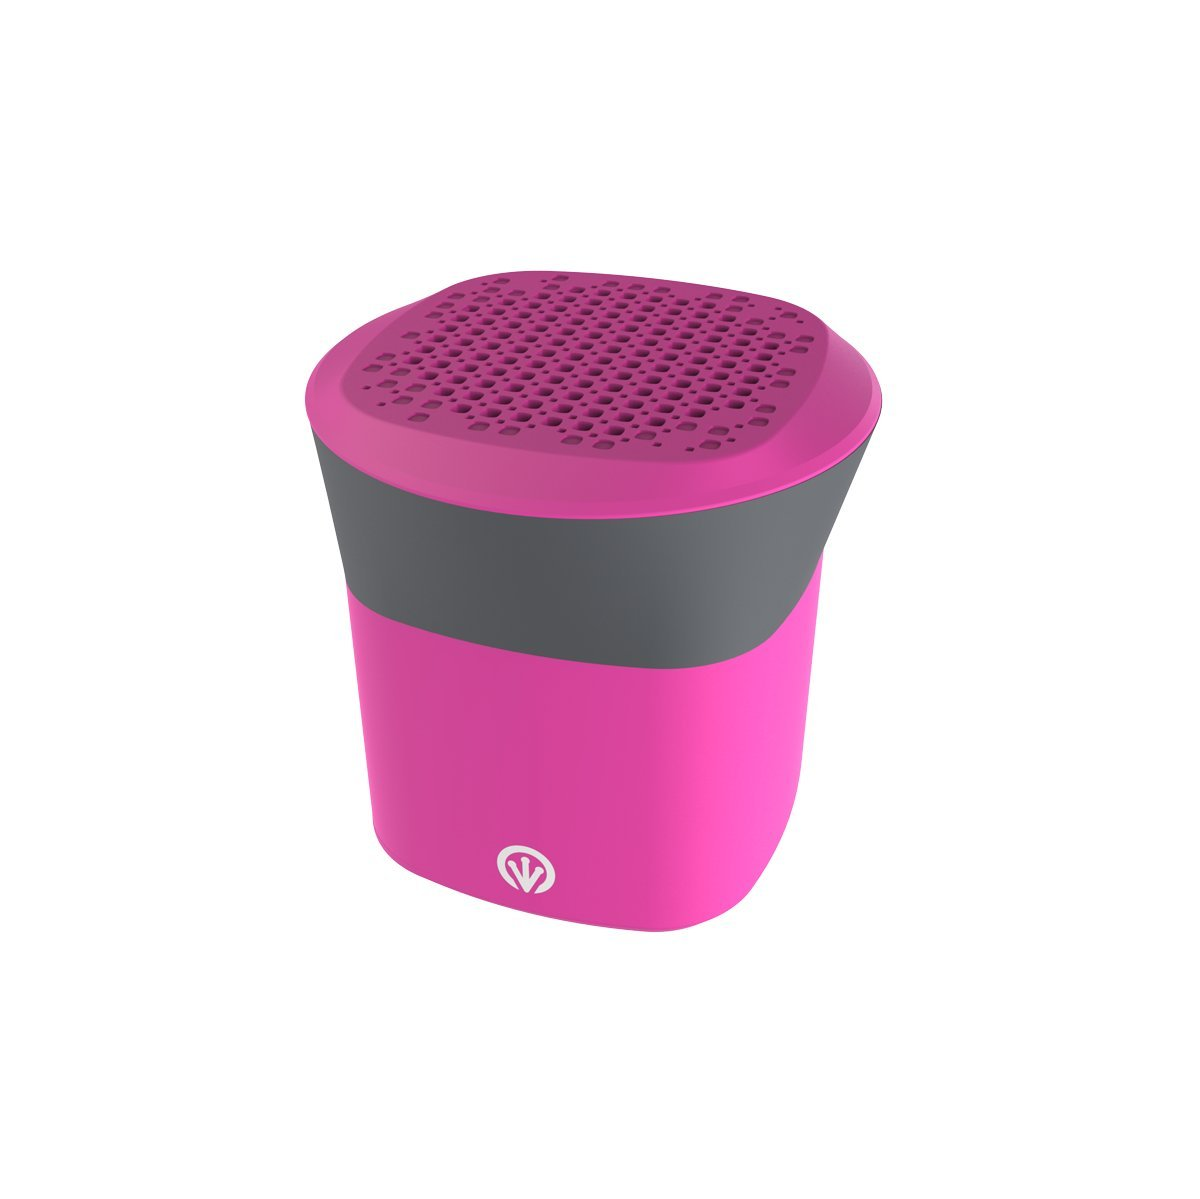 iFrogz Audio TempoBlast Wireless Bluetooth Speaker wireless bluetooth speaker led audio portable mini subwoofer